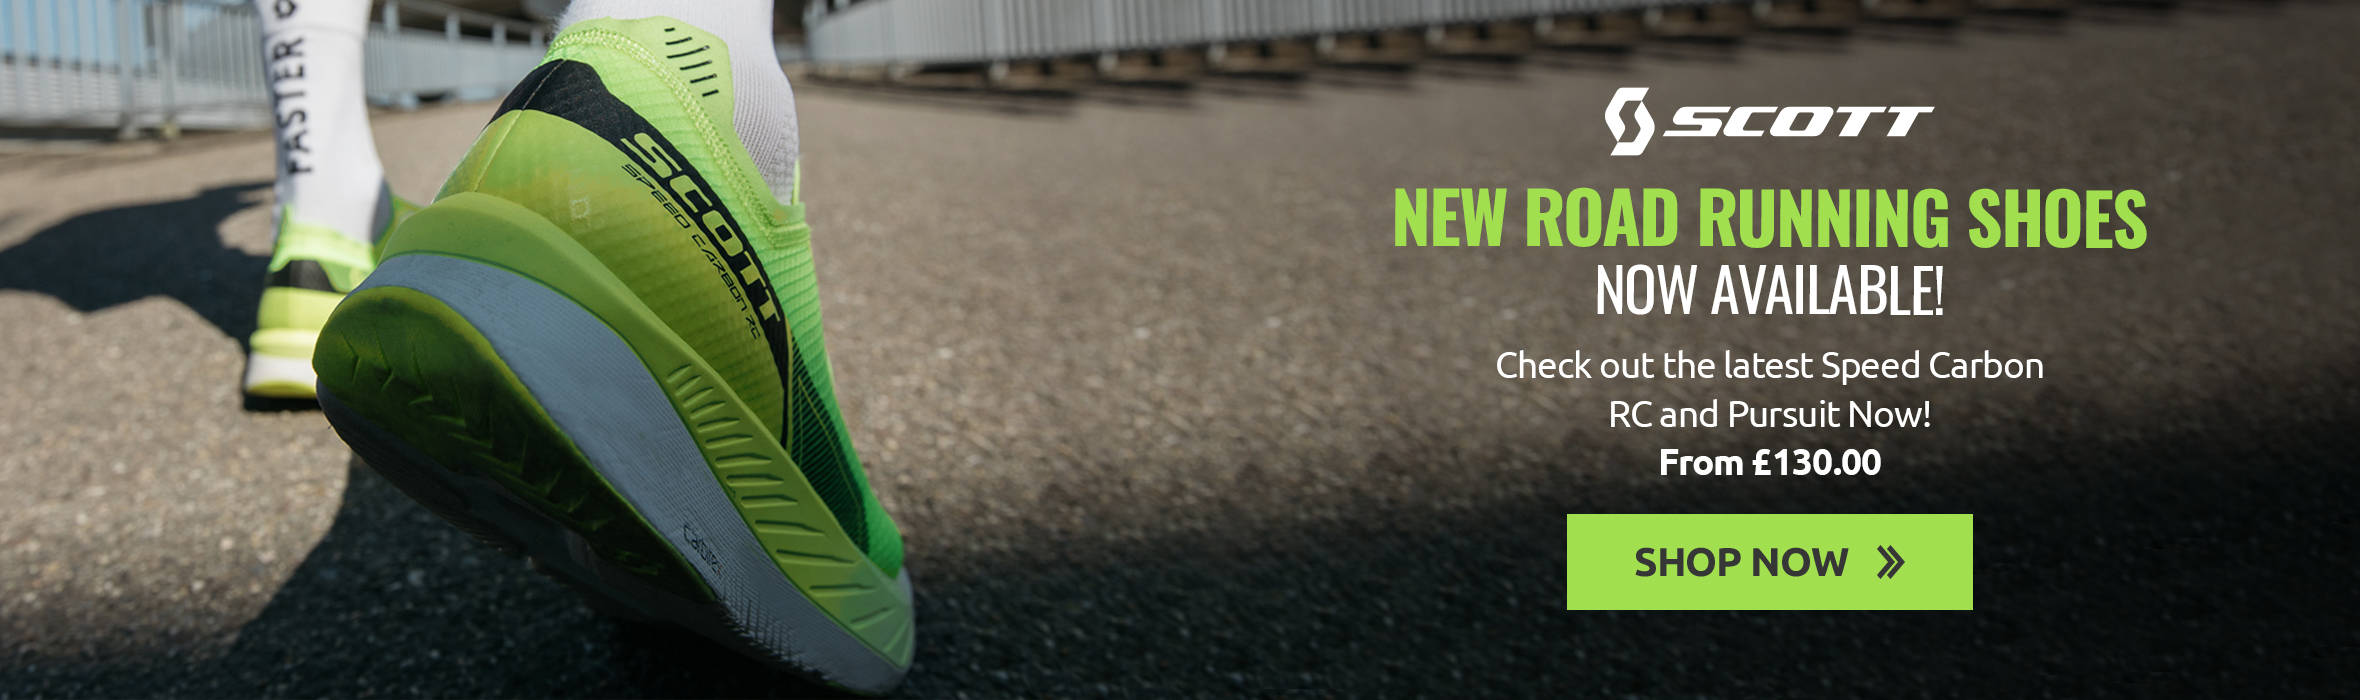 New Scott Road Running Shoes now available